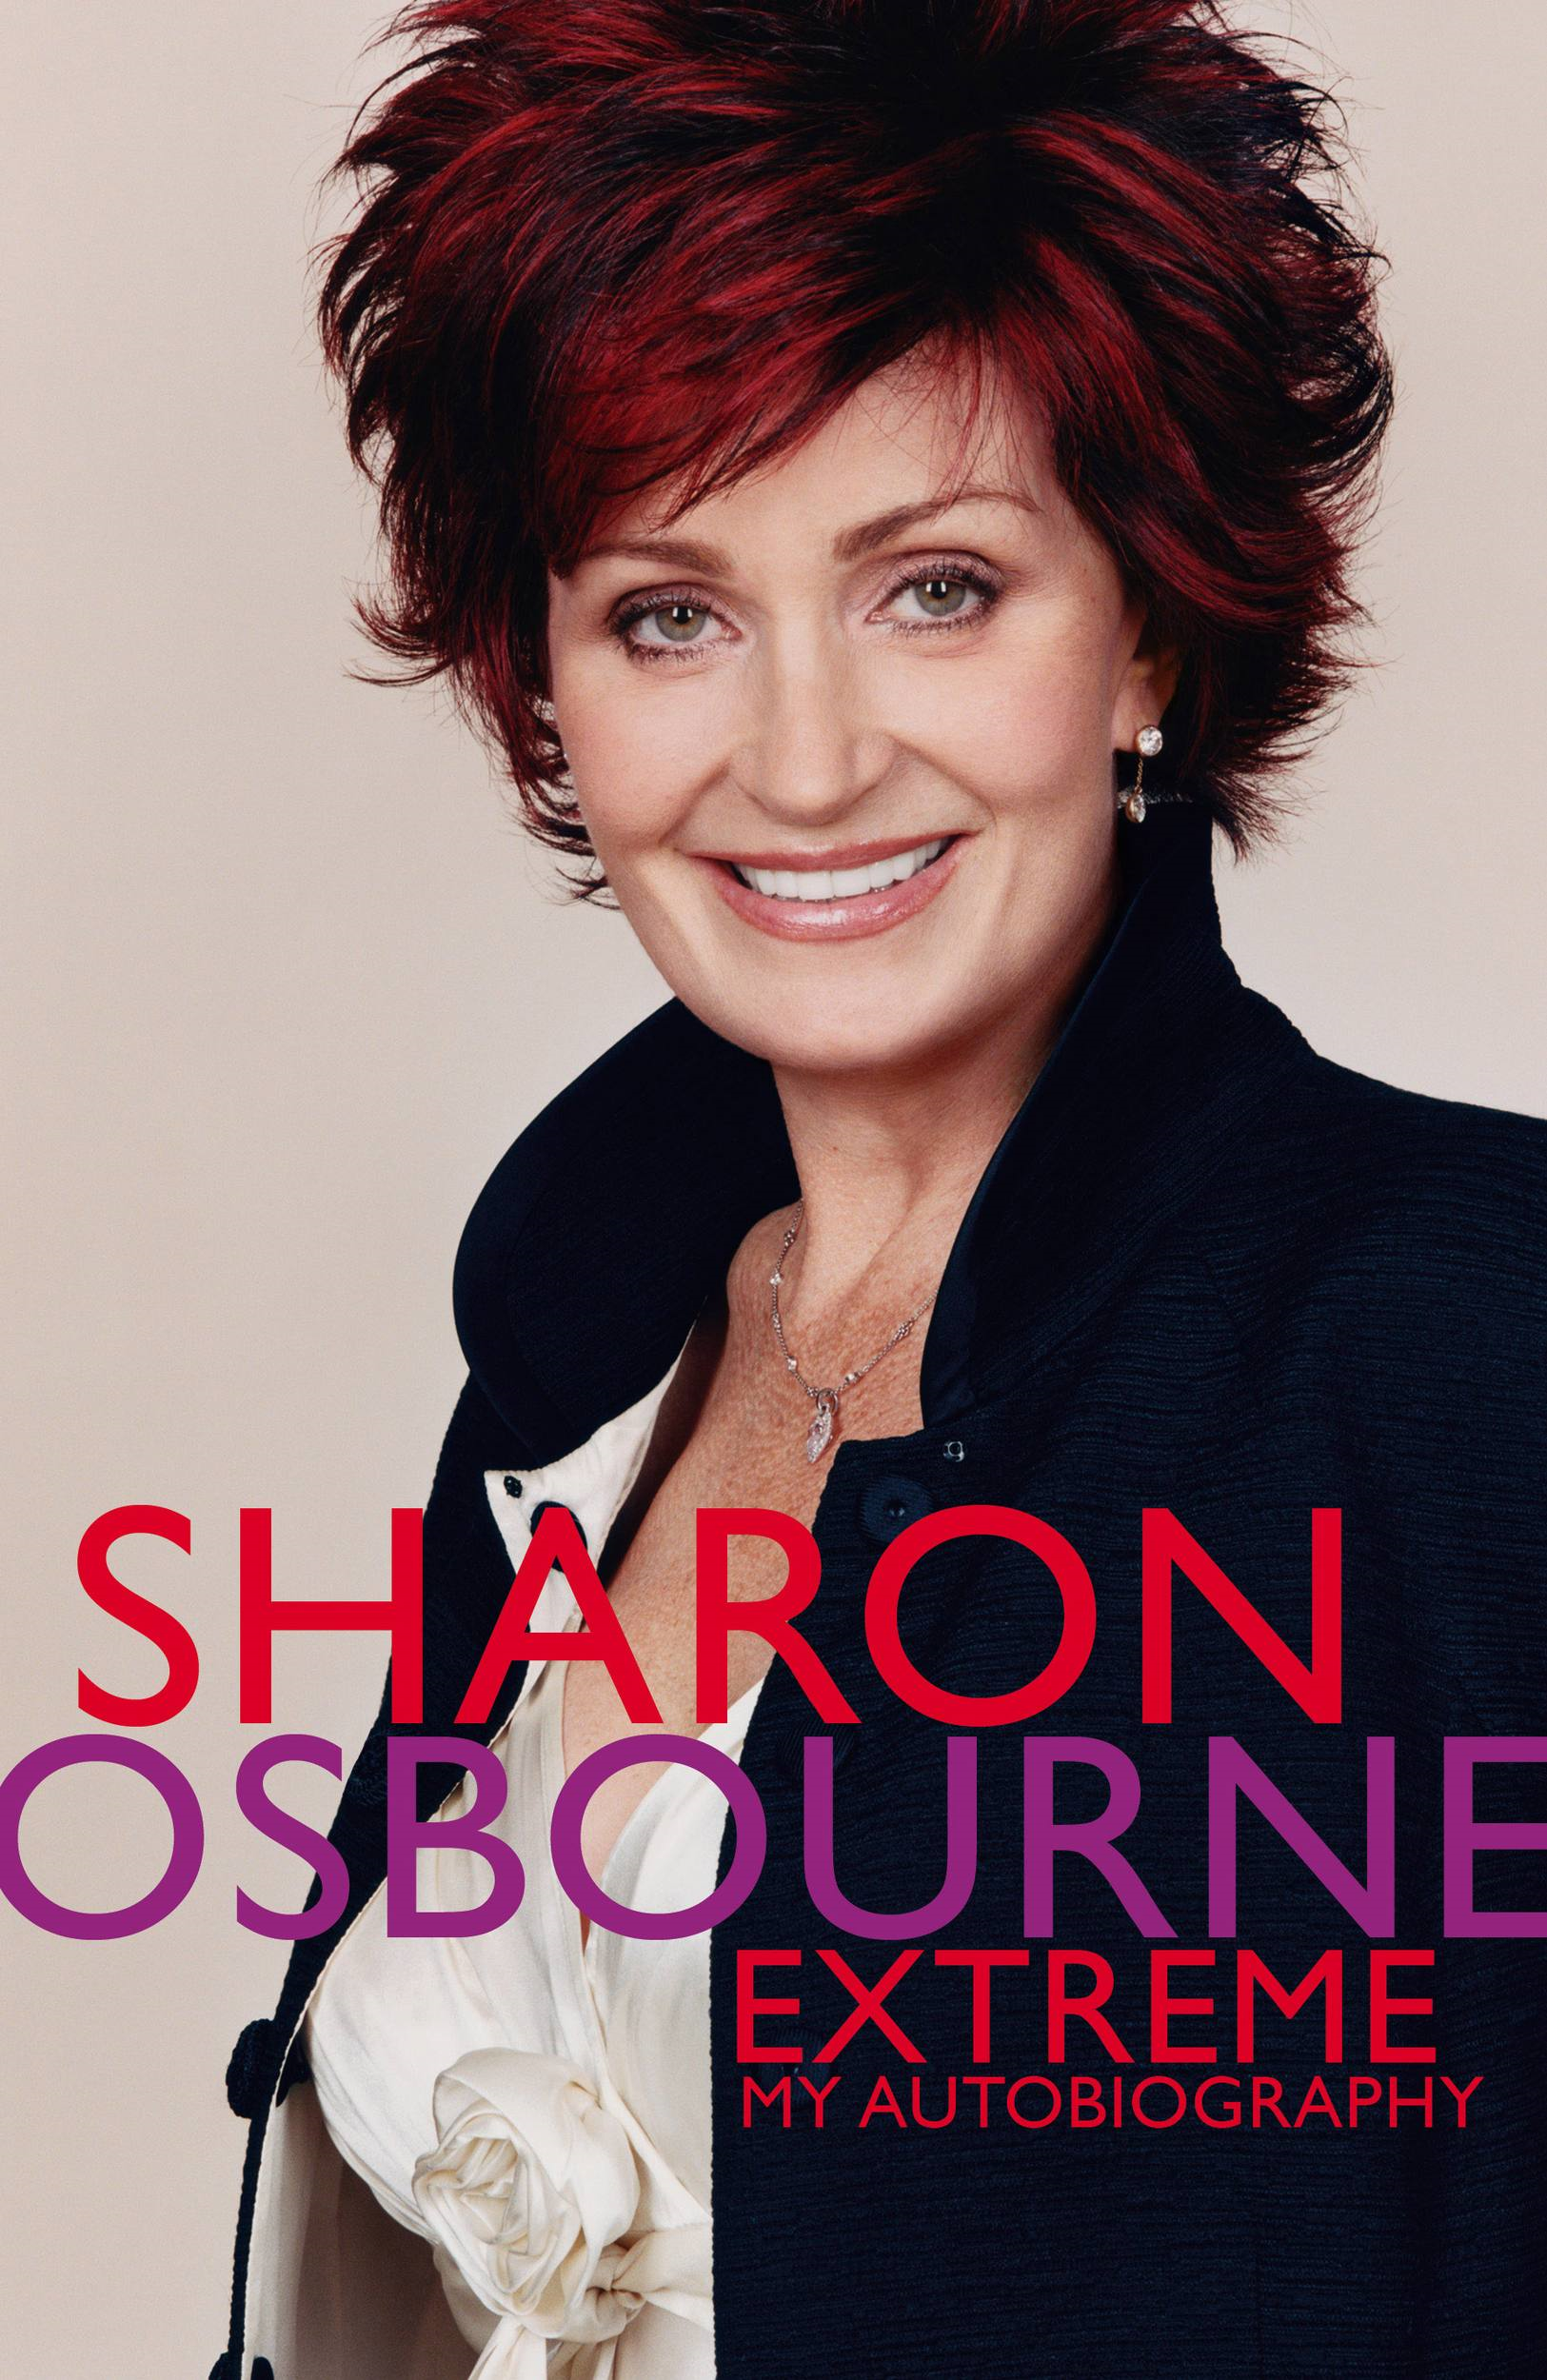 Sharon Osbourne Extreme By: Sharon Osbourne